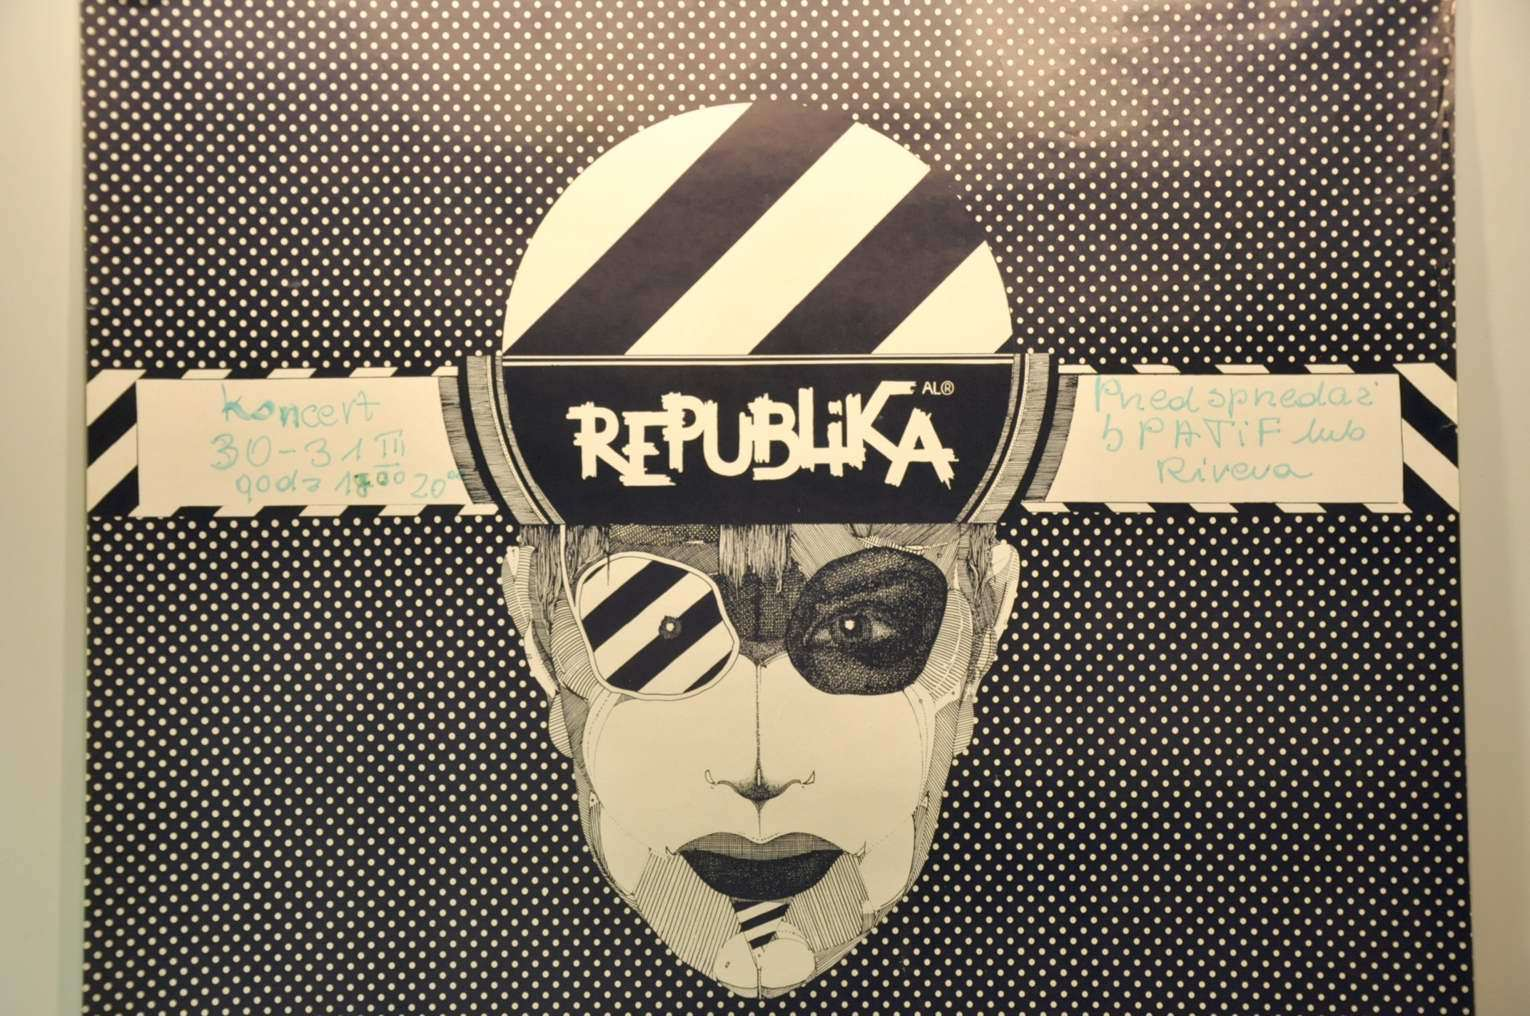 Republika Polish Poster From The 80s Rockmusic